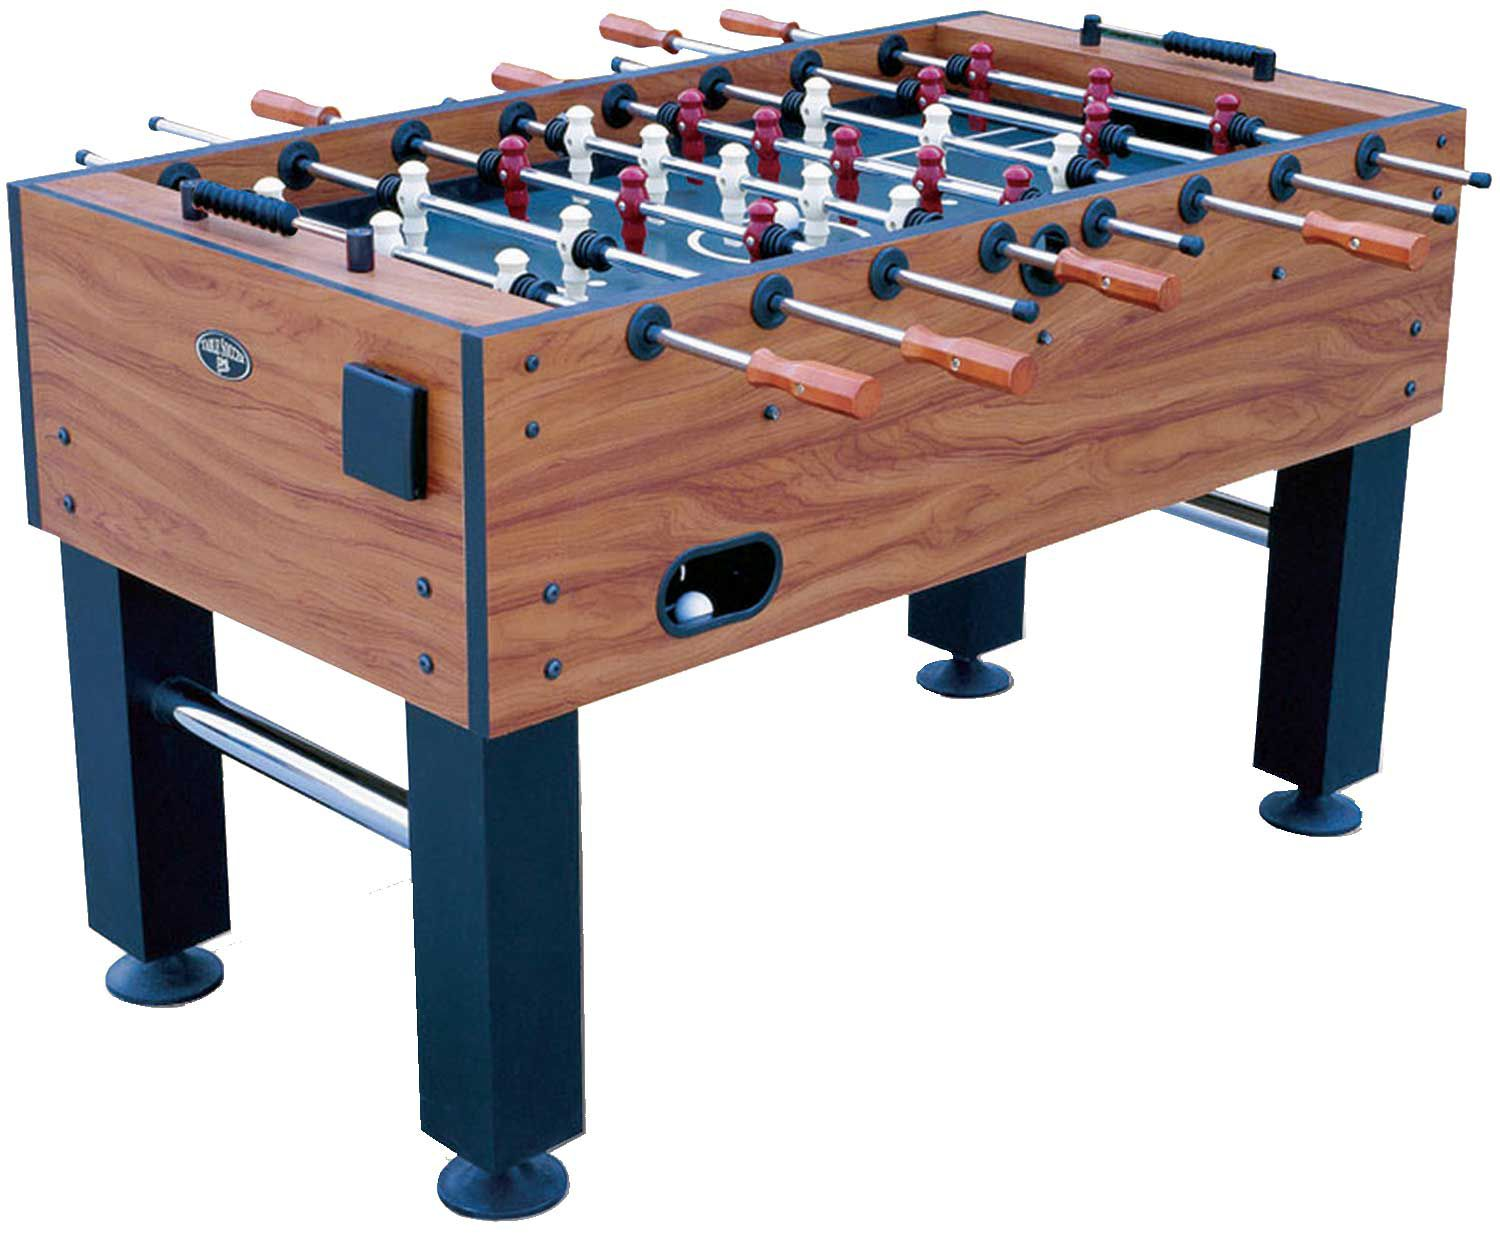 DMI Sports Manchester Foosball Table DICKS Sporting Goods - Foosball table cost